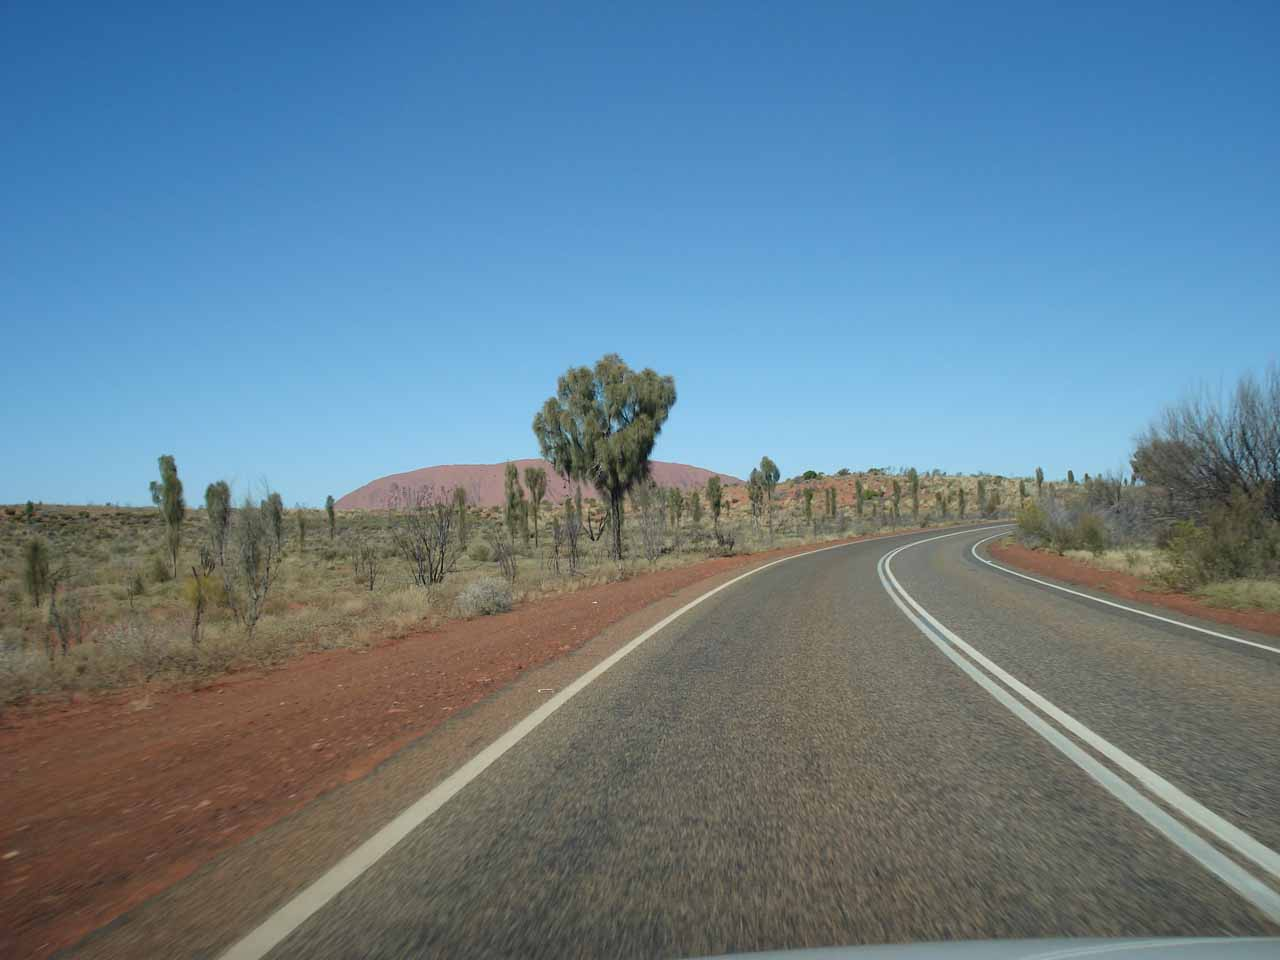 On the road to Kata Tjuta